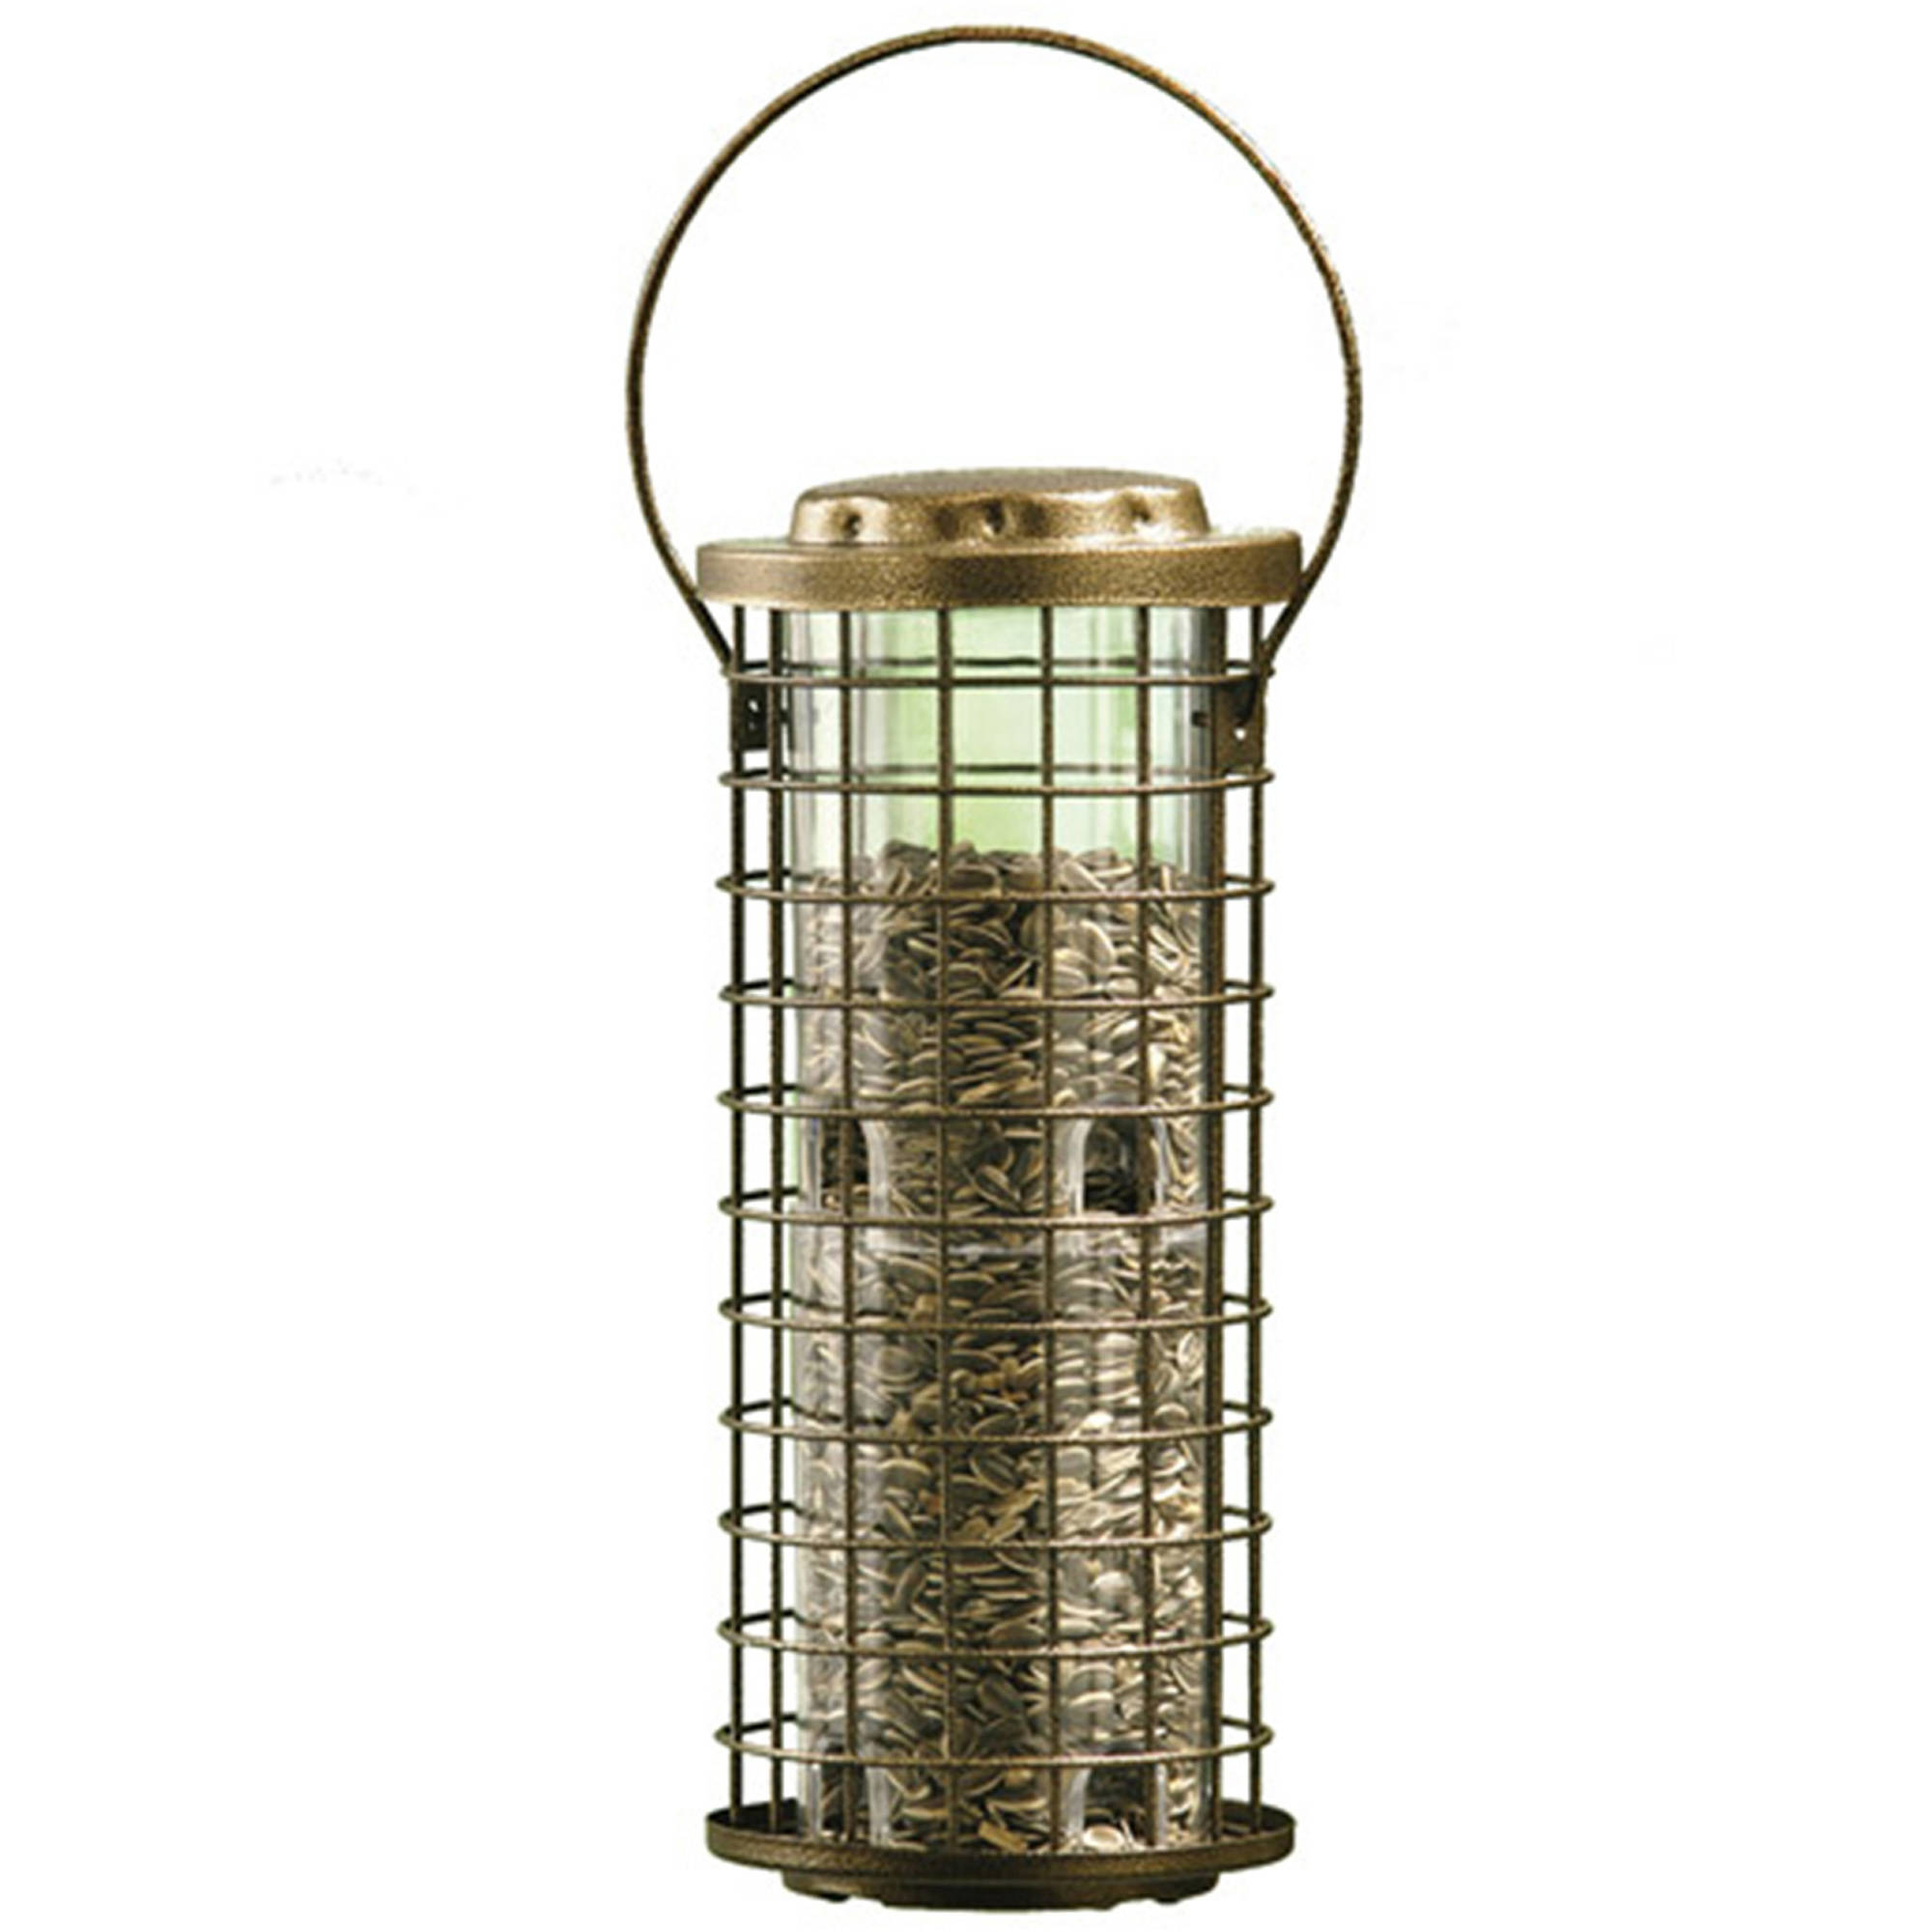 Perky Pet Products Squirrel Stumper Cage